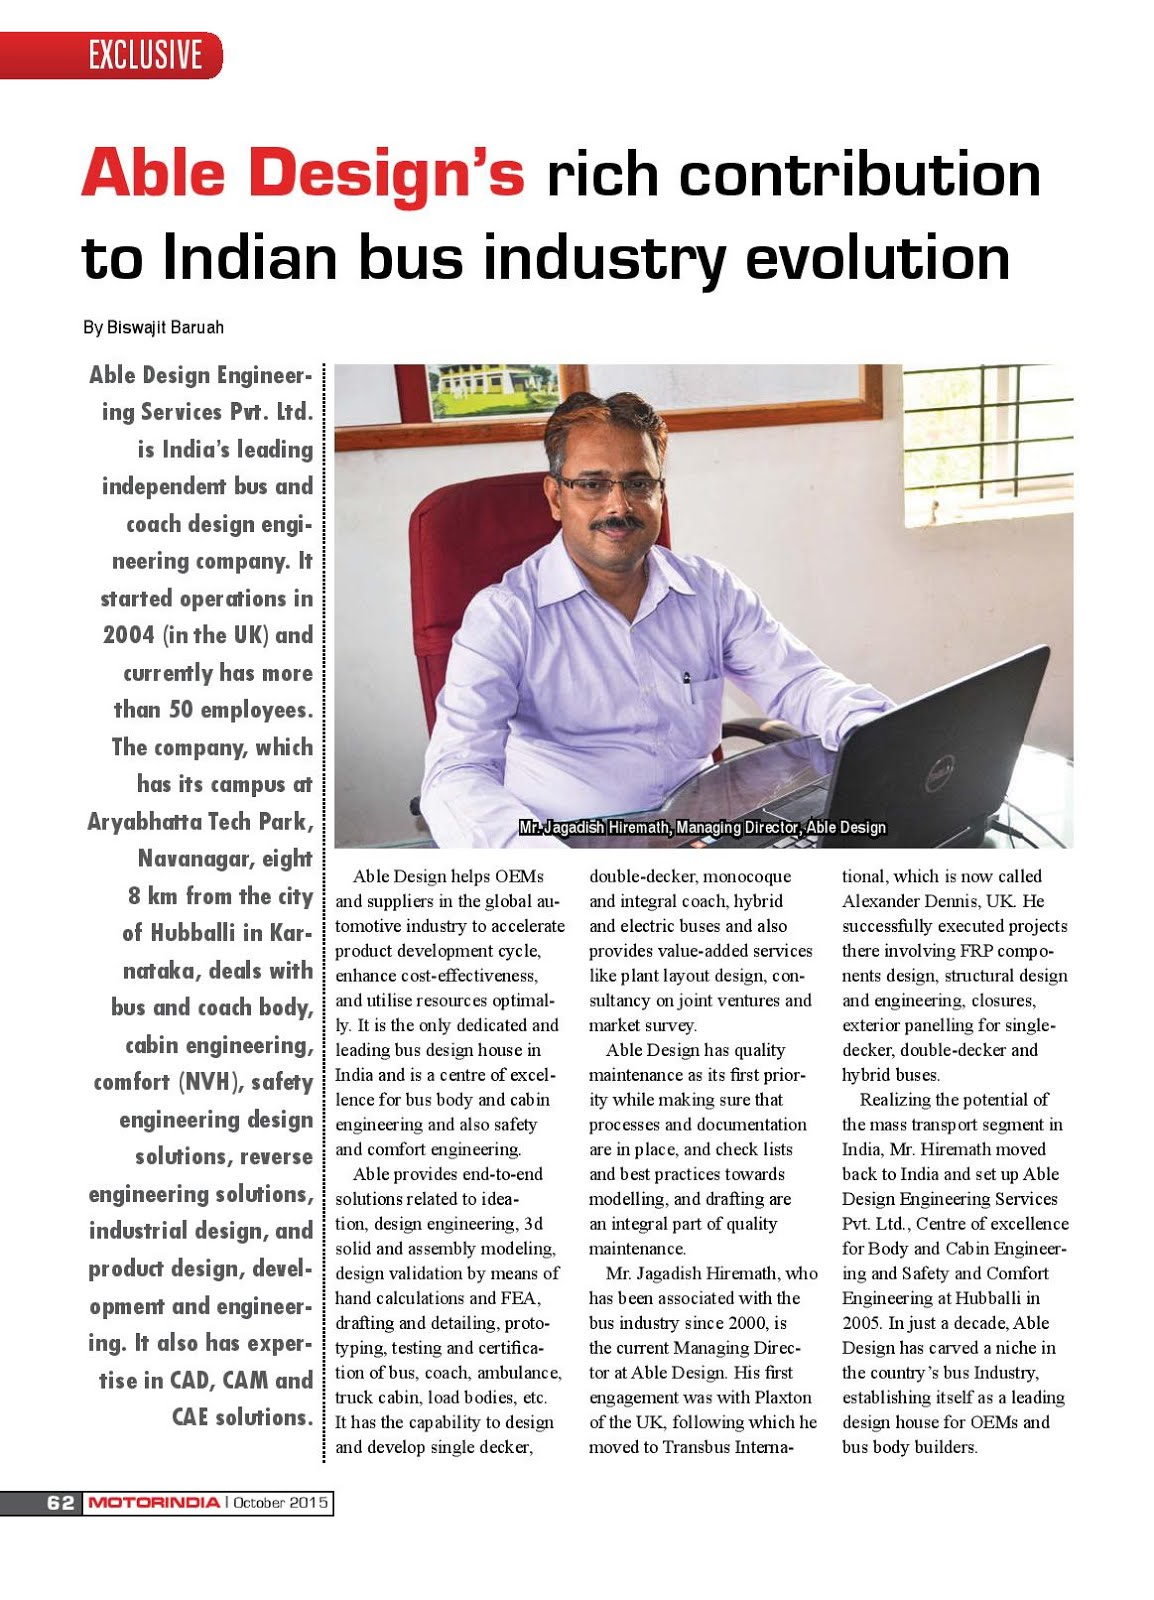 MOTOR INDIA ARTICLE 1 : ABLE DESIGN HUBBALLI, KARNATAKA